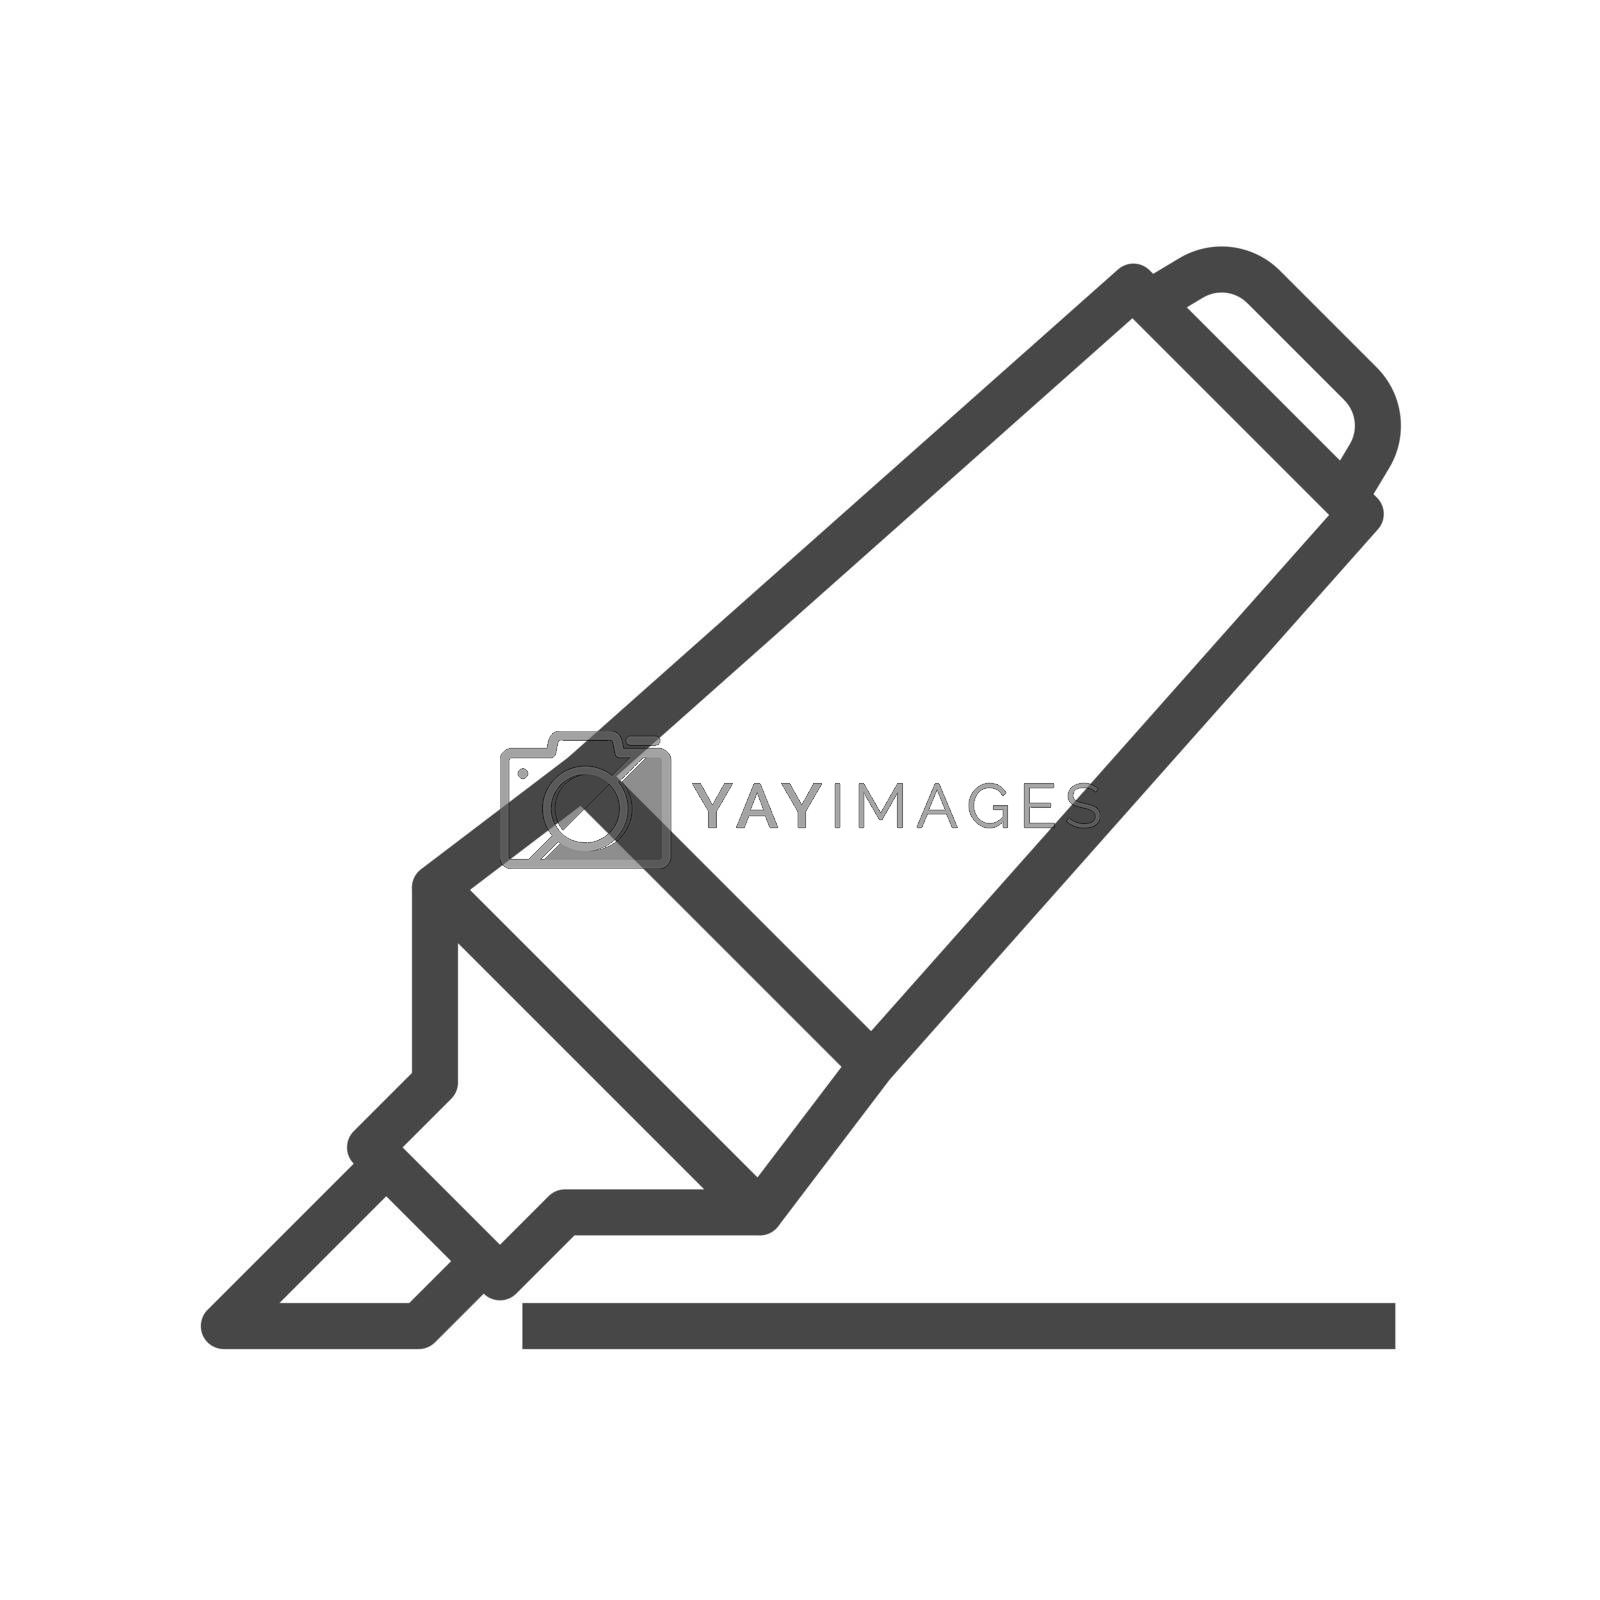 Marker Pen Thin Line Vector Icon. Flat icon isolated on the white background. Editable EPS file. Vector illustration.